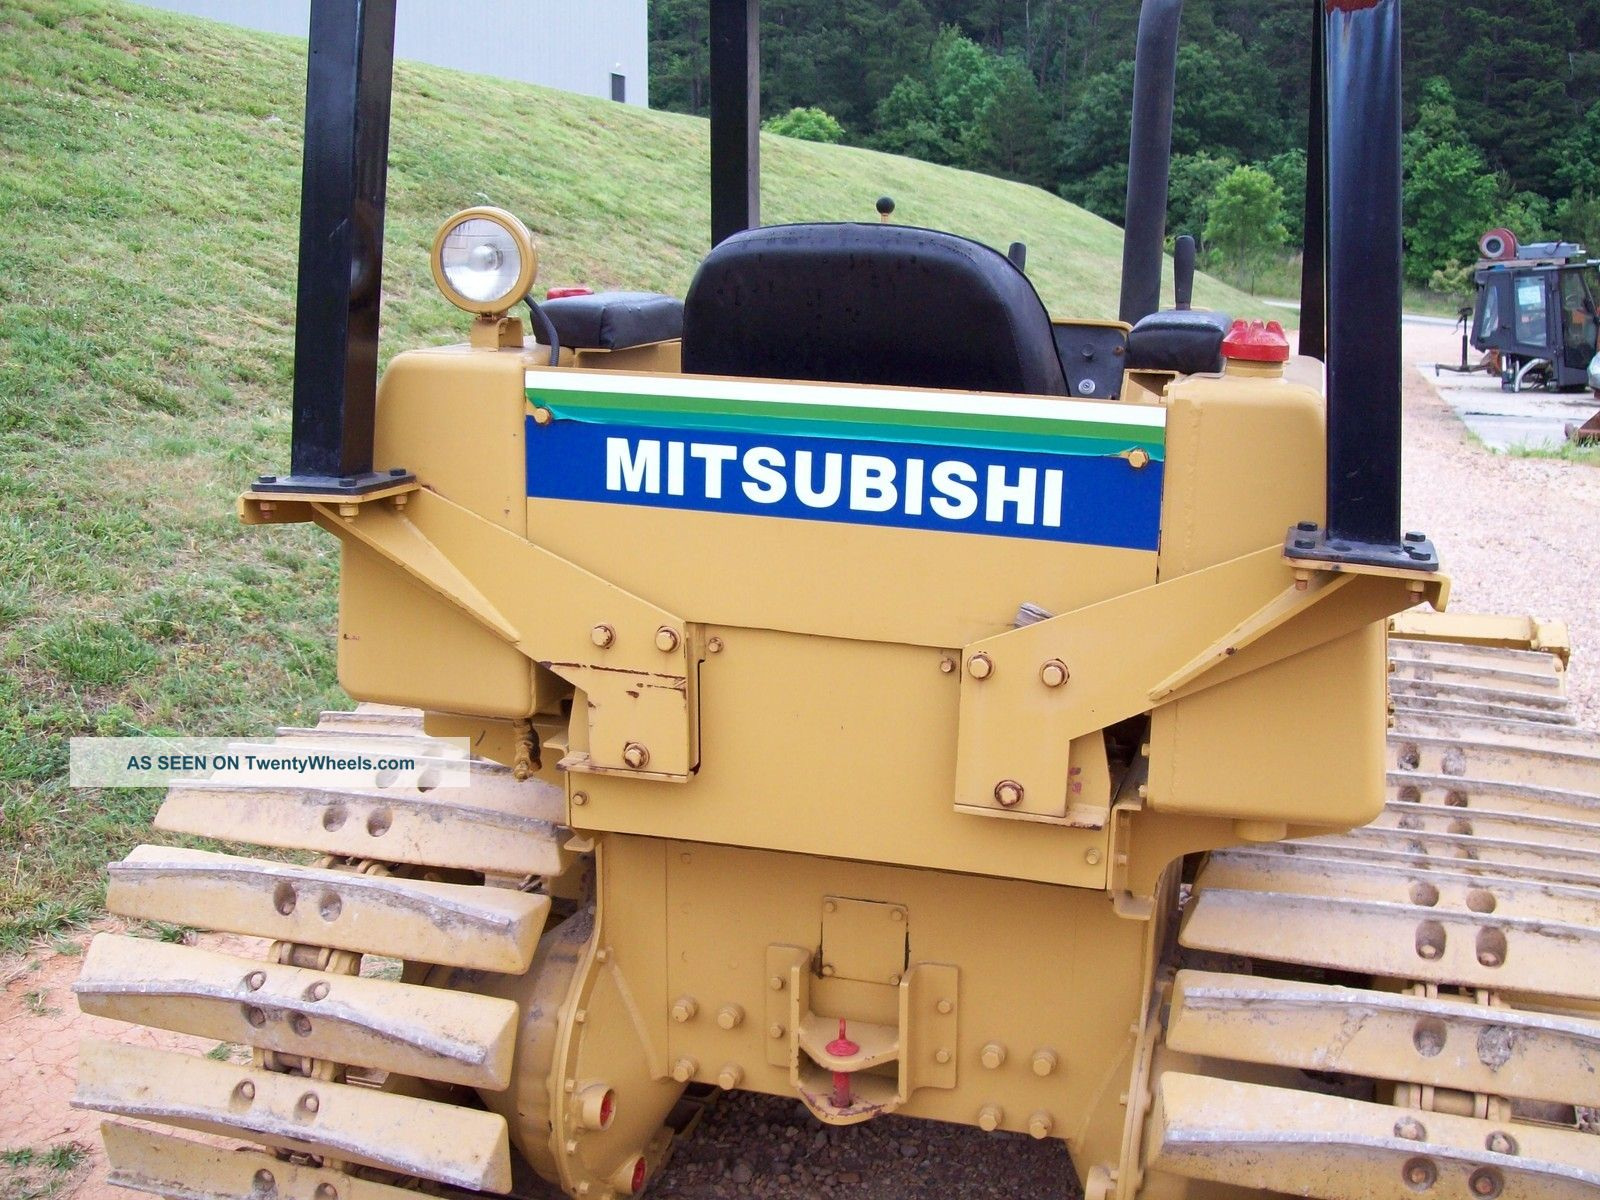 Mitsubishi Bull Tractor submited images.